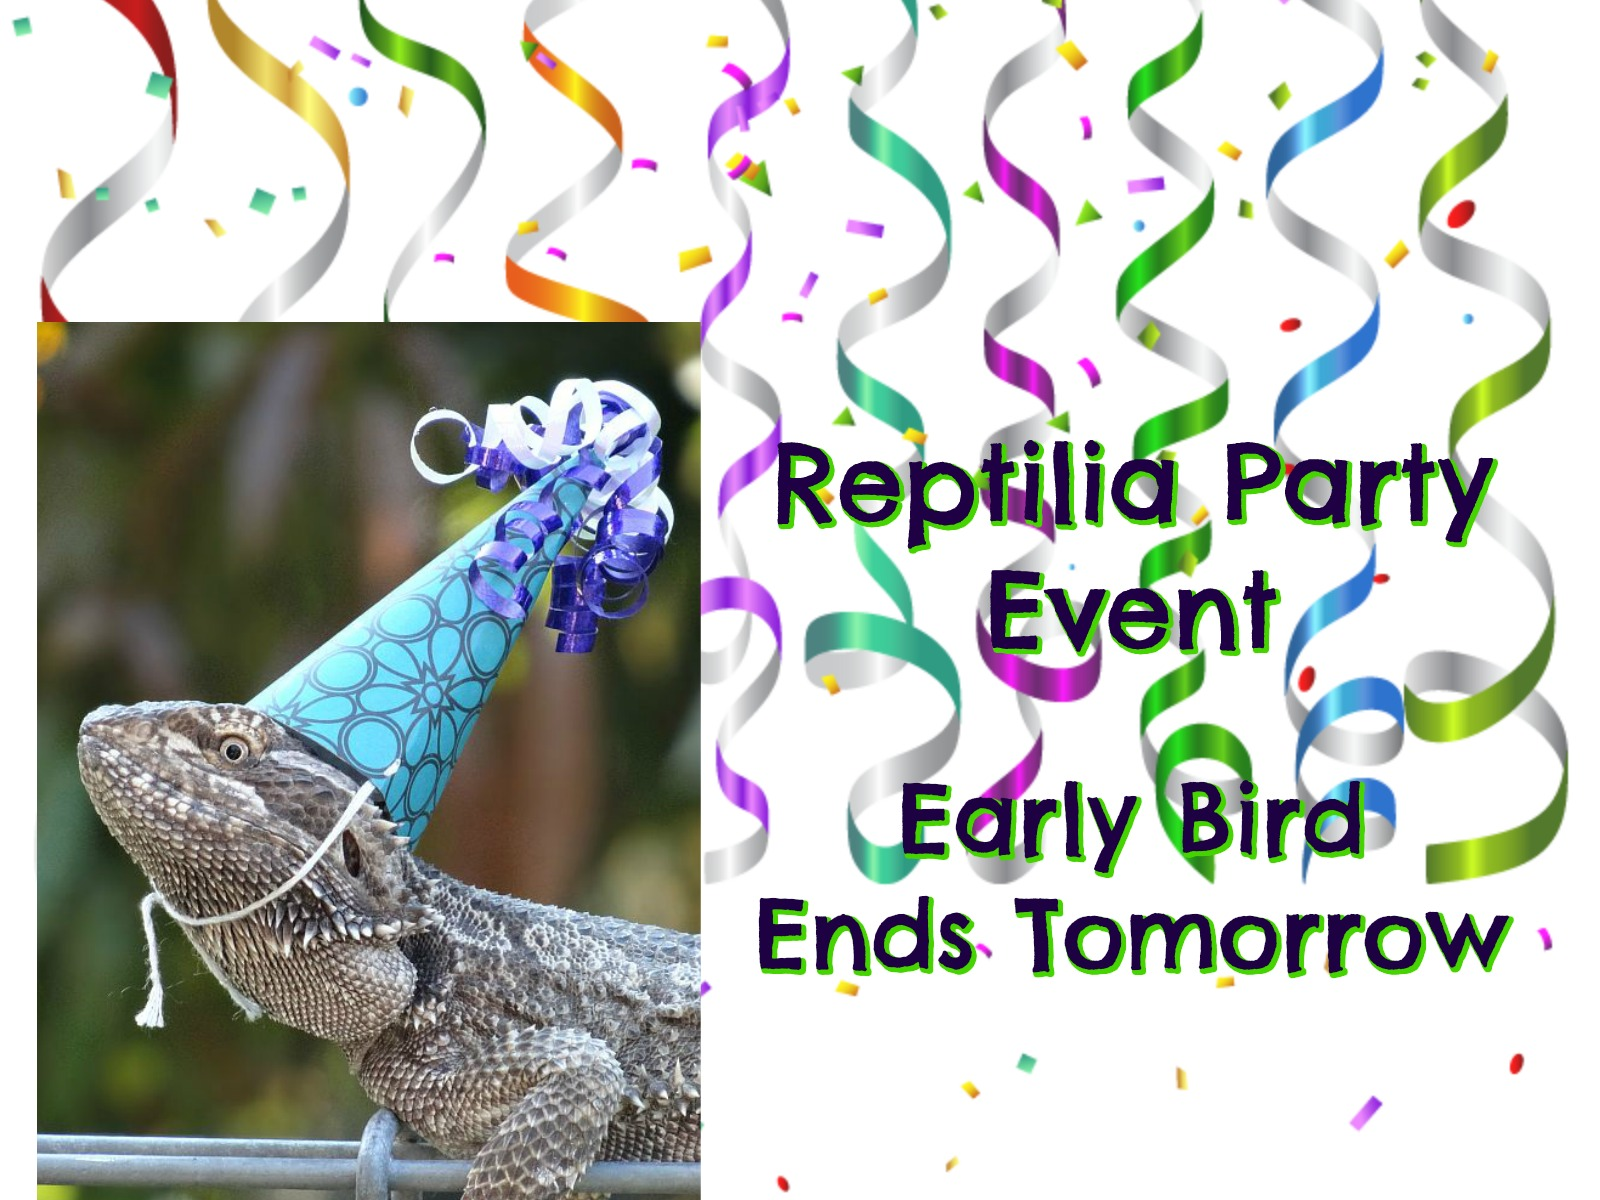 Reptilia Party – Early Bird Ends Tomorrow